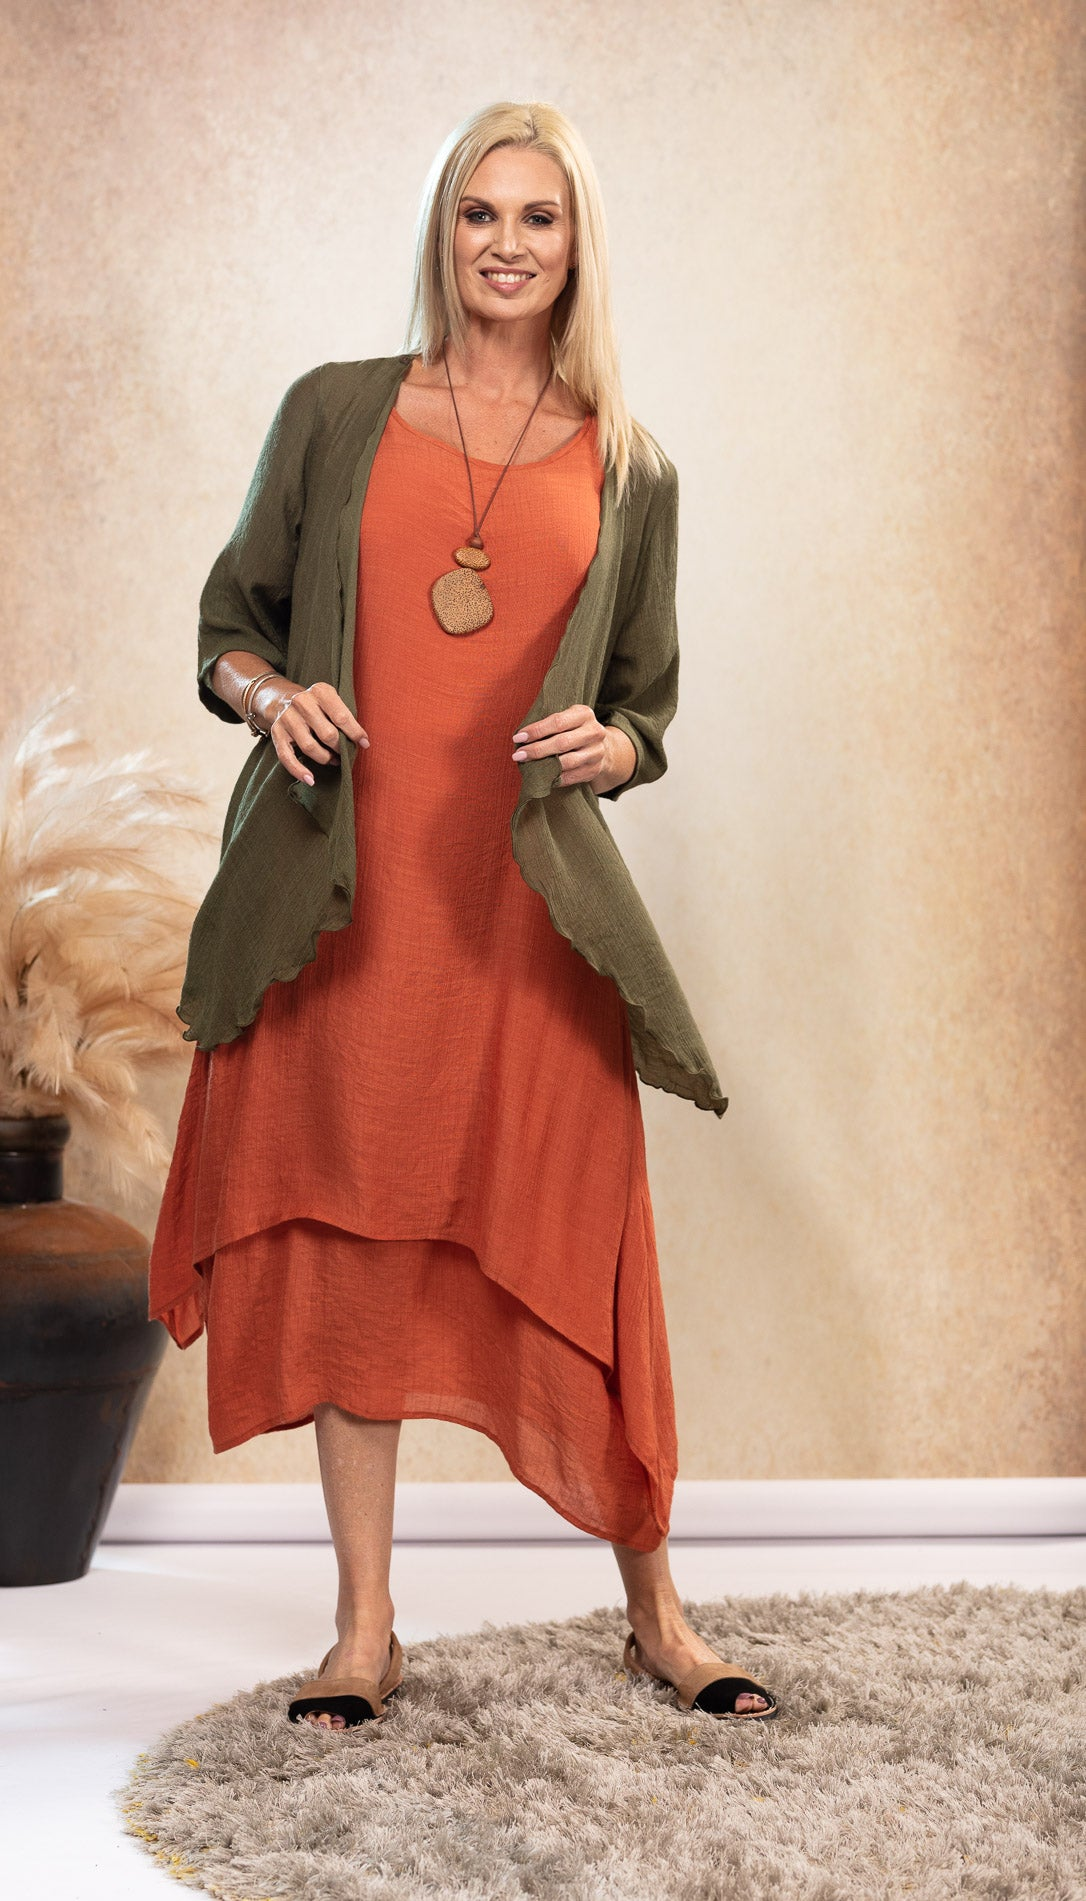 Bamboo Dress in earthy Rust with pockets. Olive green bamboo jacket. Avaraca sandals.